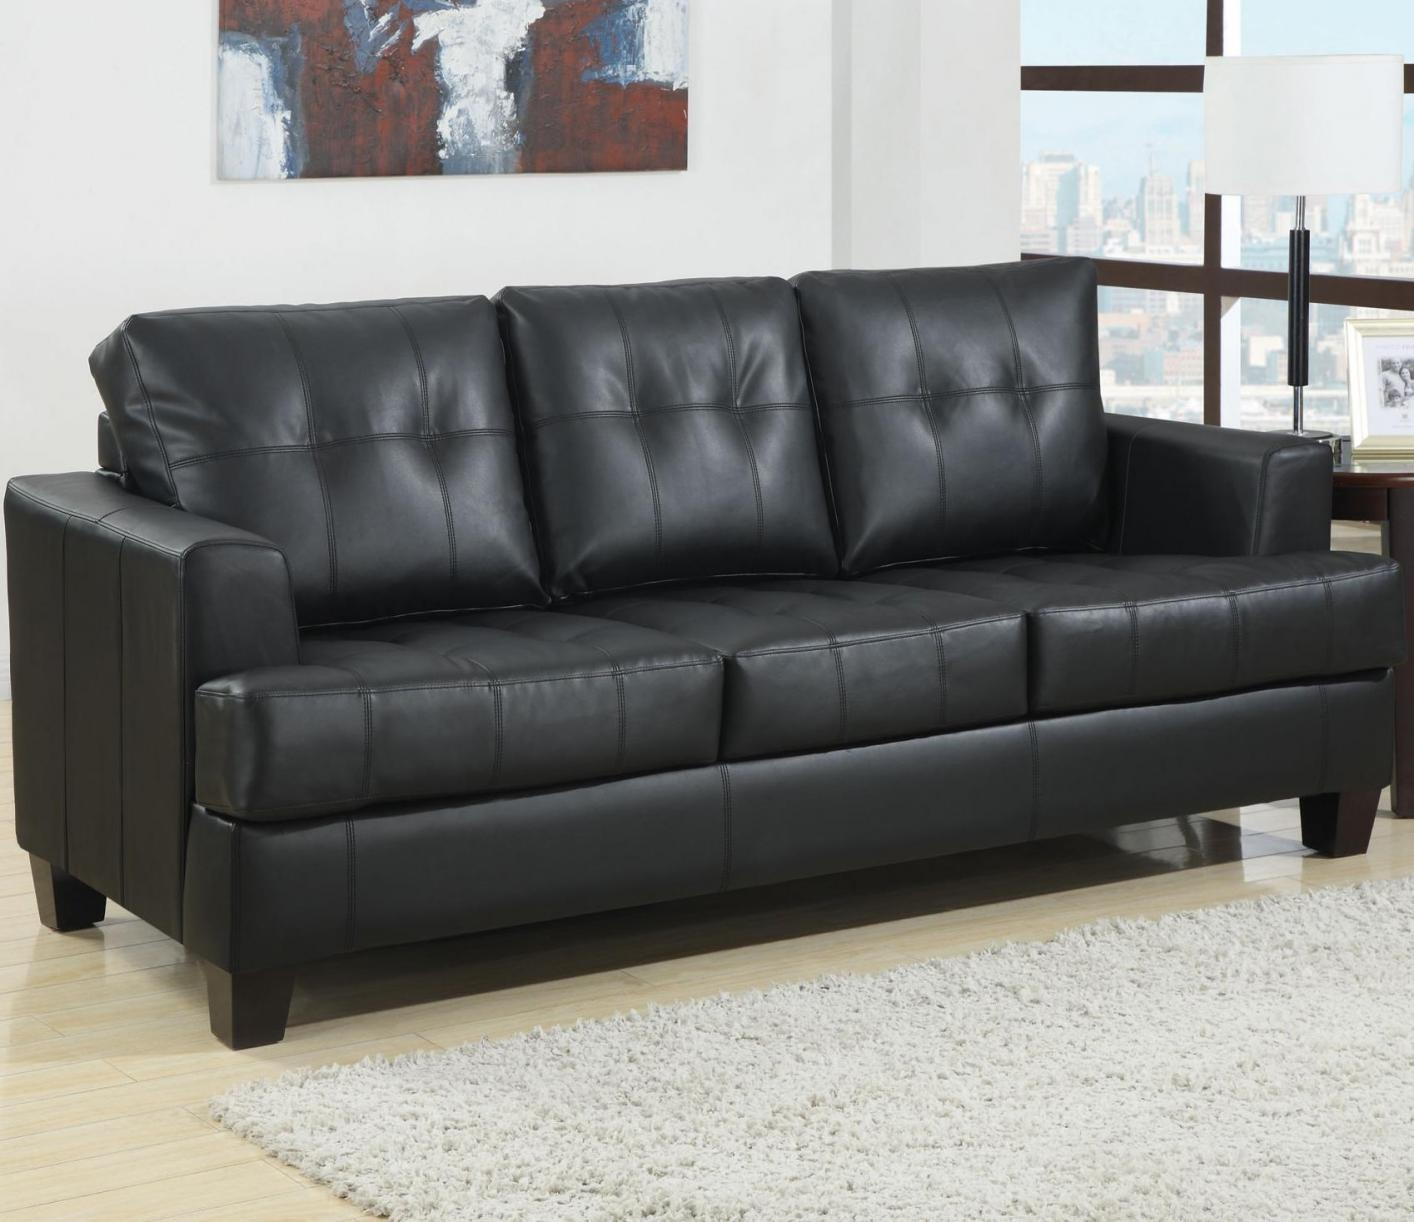 Samuel Black Leather Sofa Bed – Steal A Sofa Furniture Outlet Los In Los Angeles Sleeper Sofas (View 3 of 20)